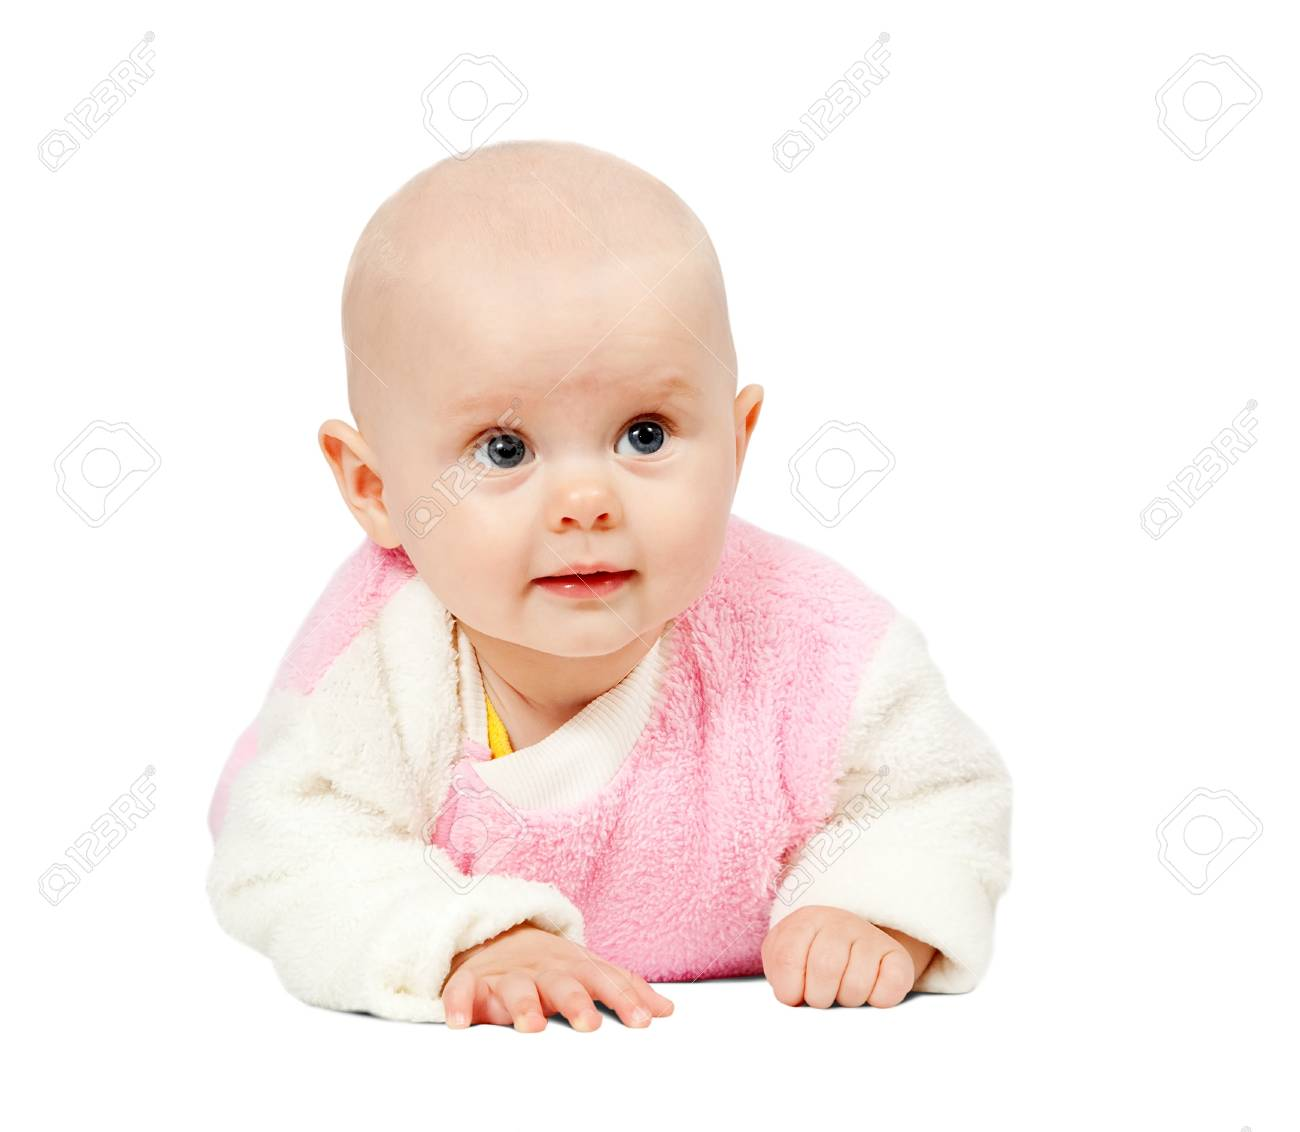 adorable little baby, isolated on white background Stock Photo - 7644646